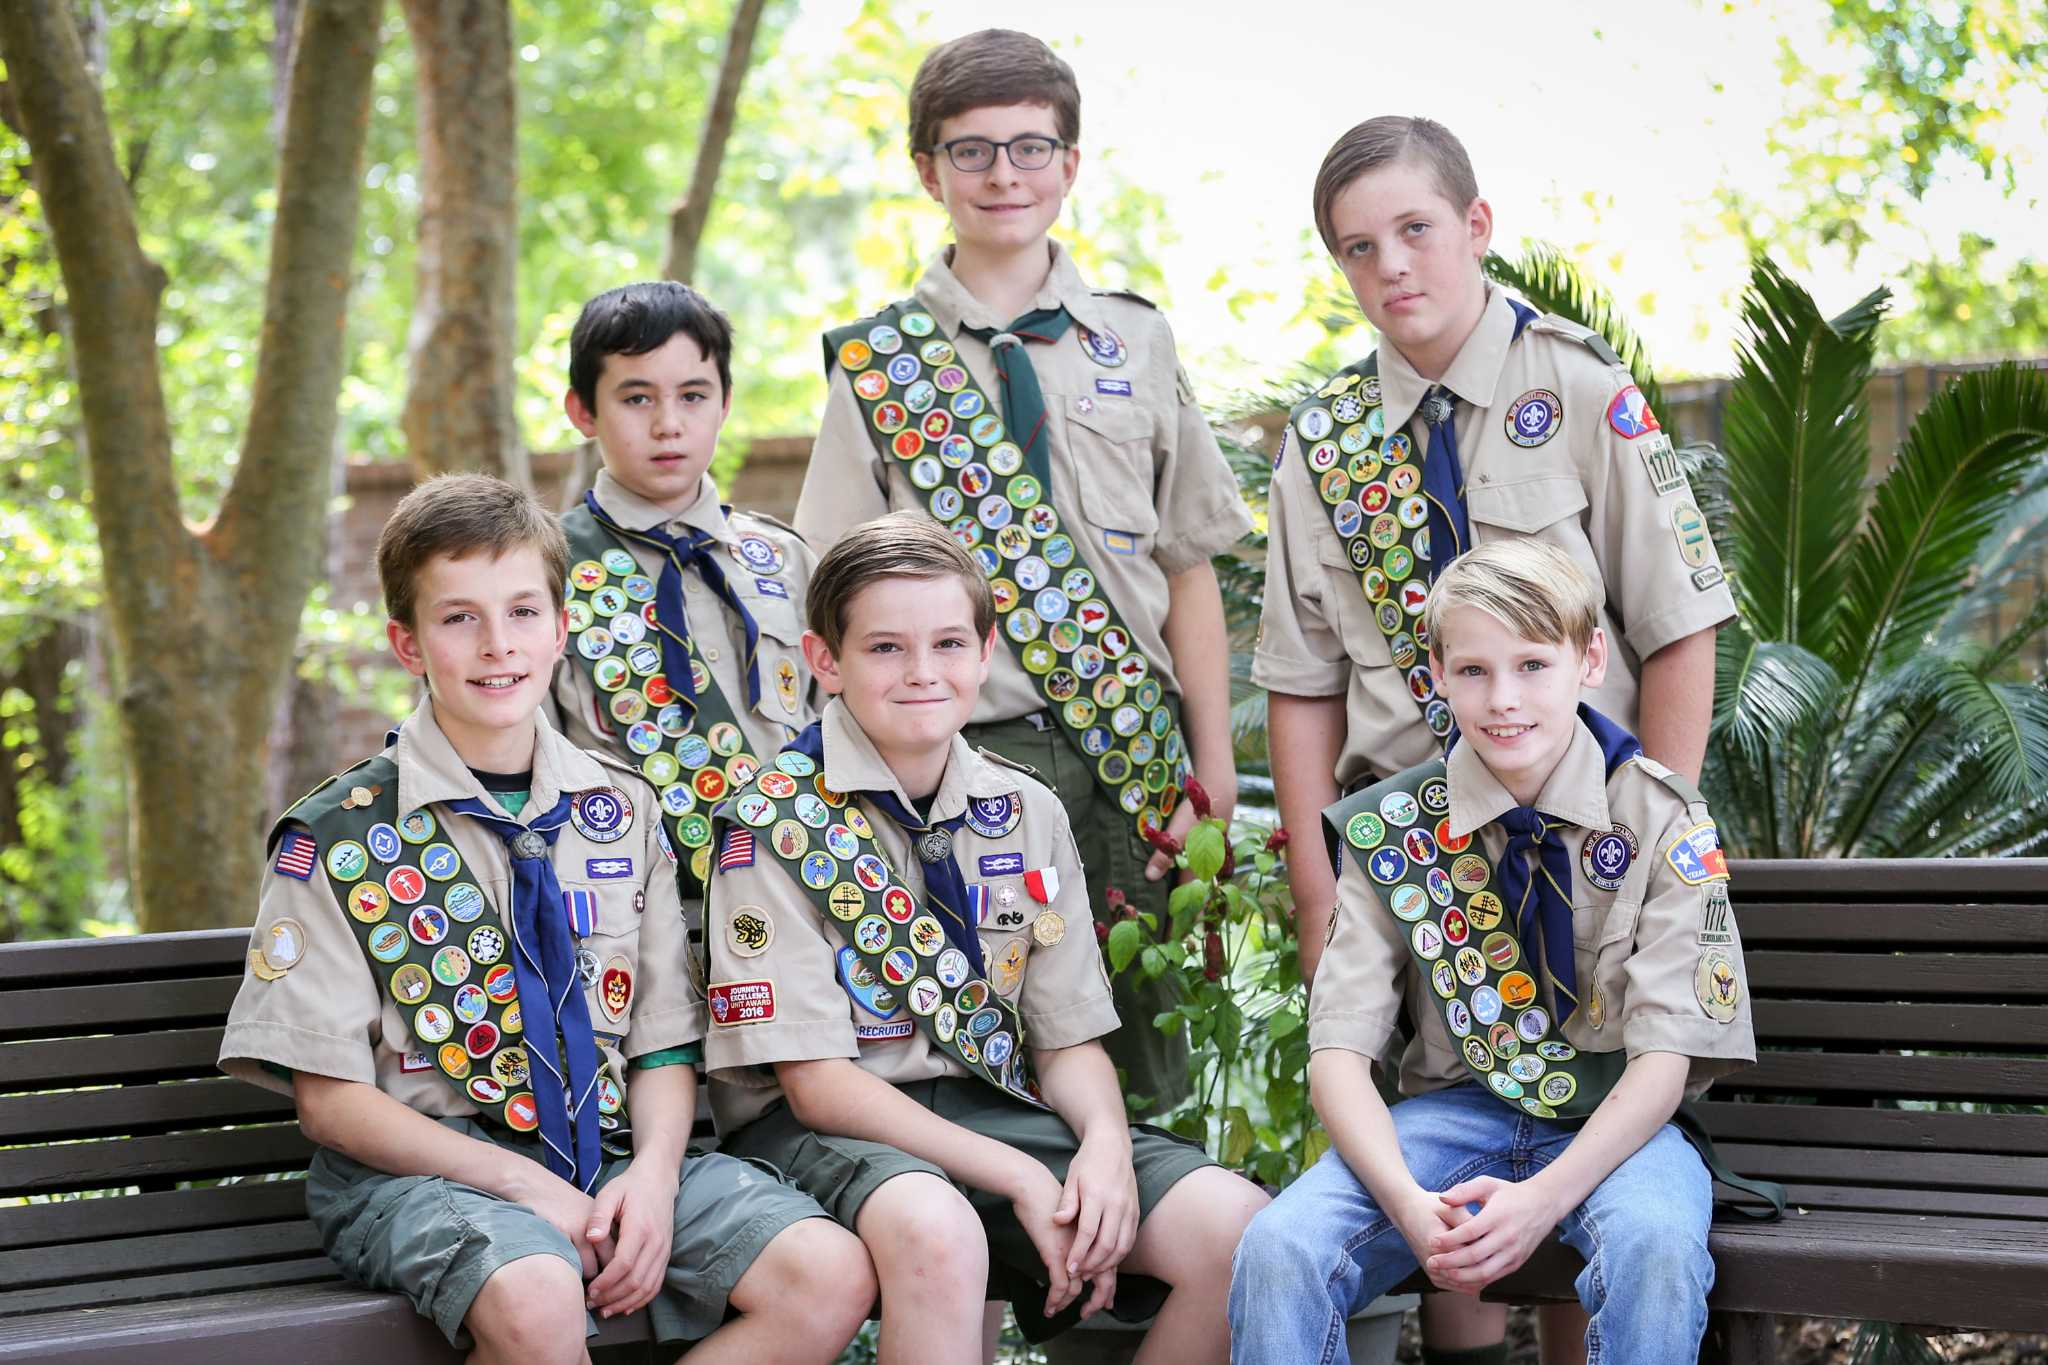 Boy Scouts of America invites boys and girls to join Cub Scouts